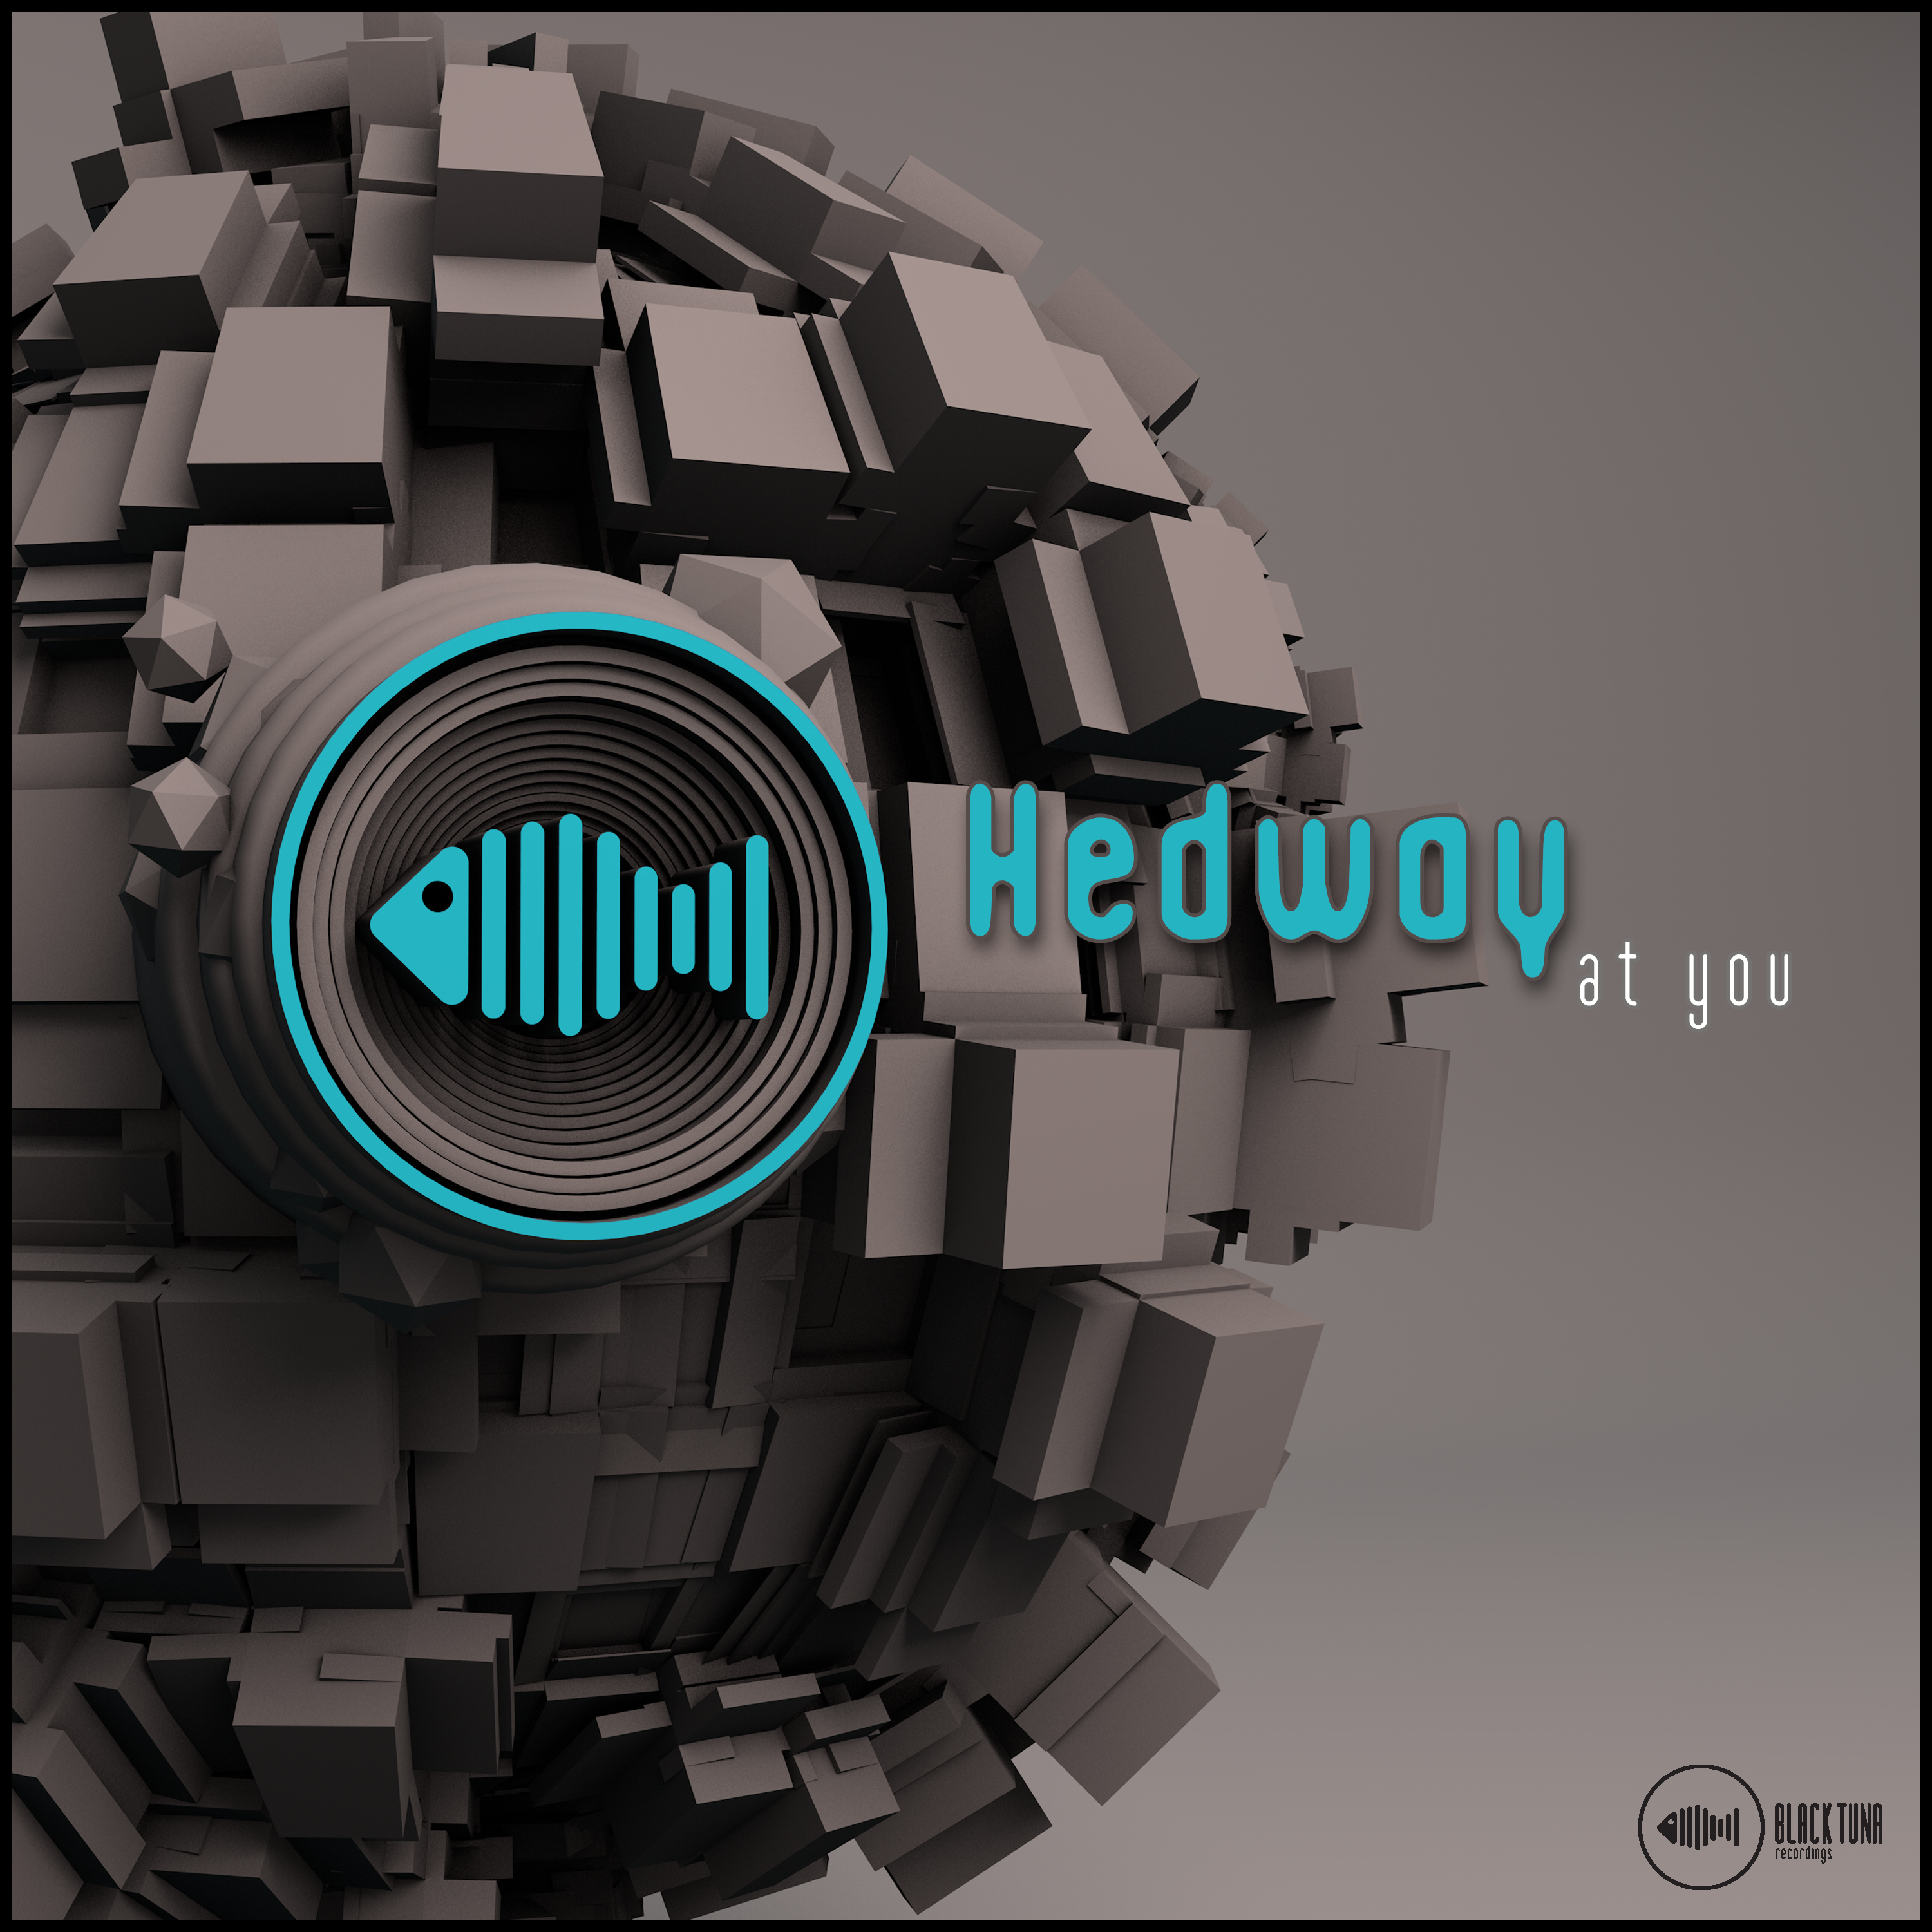 Hedway - At You